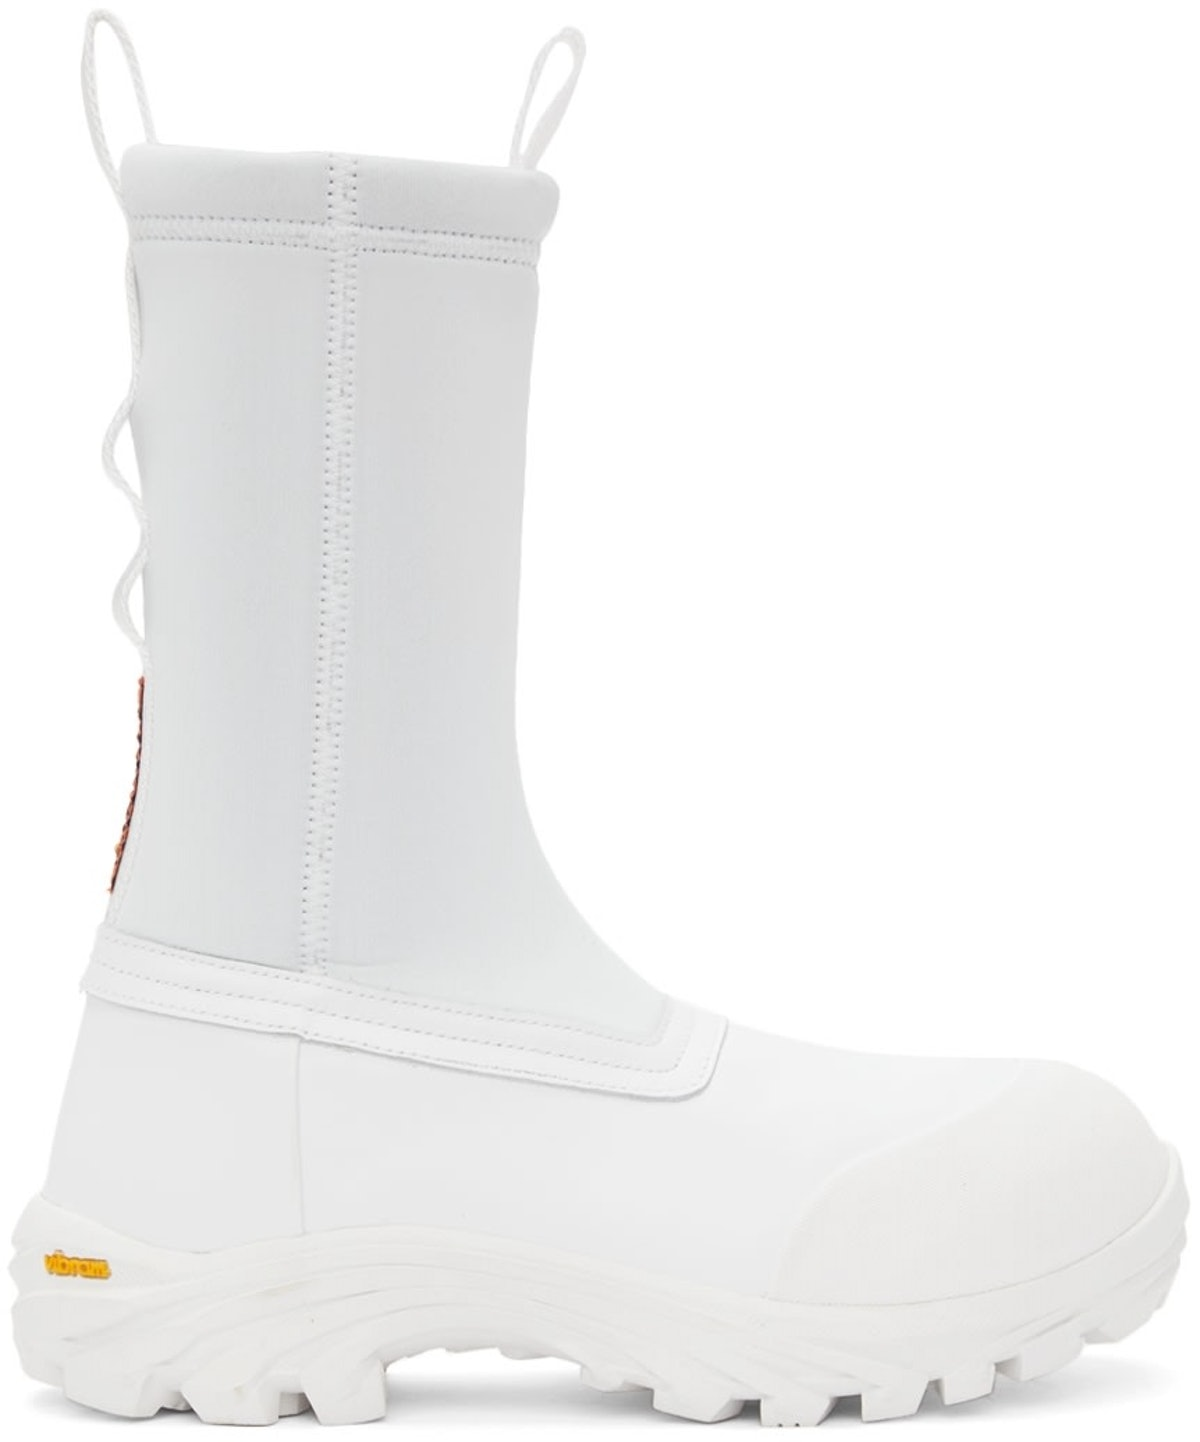 White Leather Security Sock Boots from Heron Preston, available to shop on SSENSE.